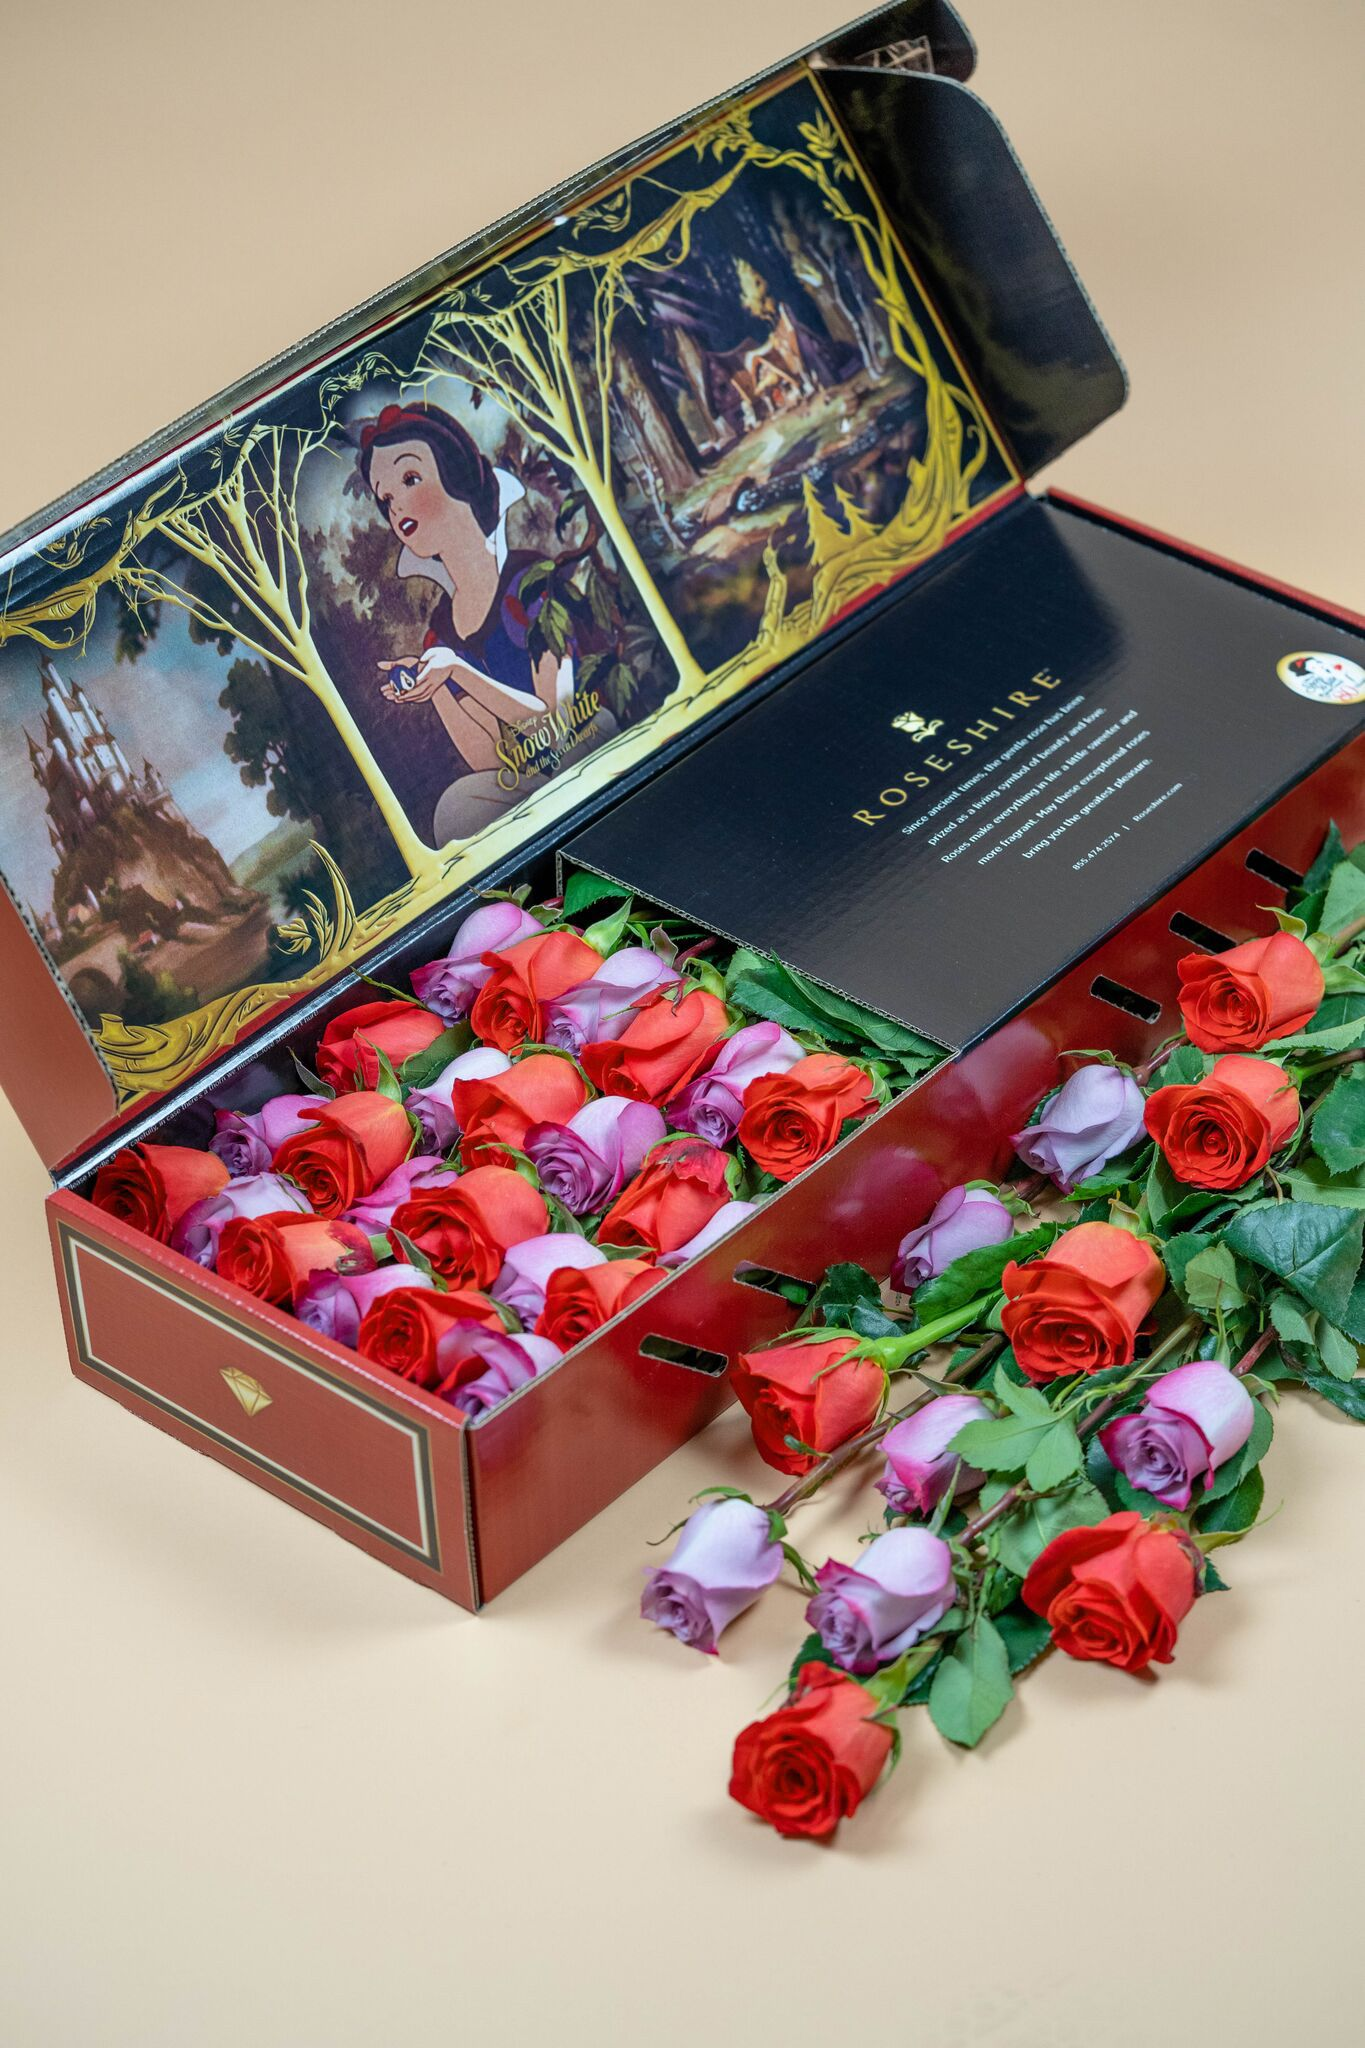 Roseshire X Disney Snow White Roses Luxury Roses Delivered Overnight Gift The Roseshire Experience Today More Classic Fairy Tales Roses Luxury Disney Roses